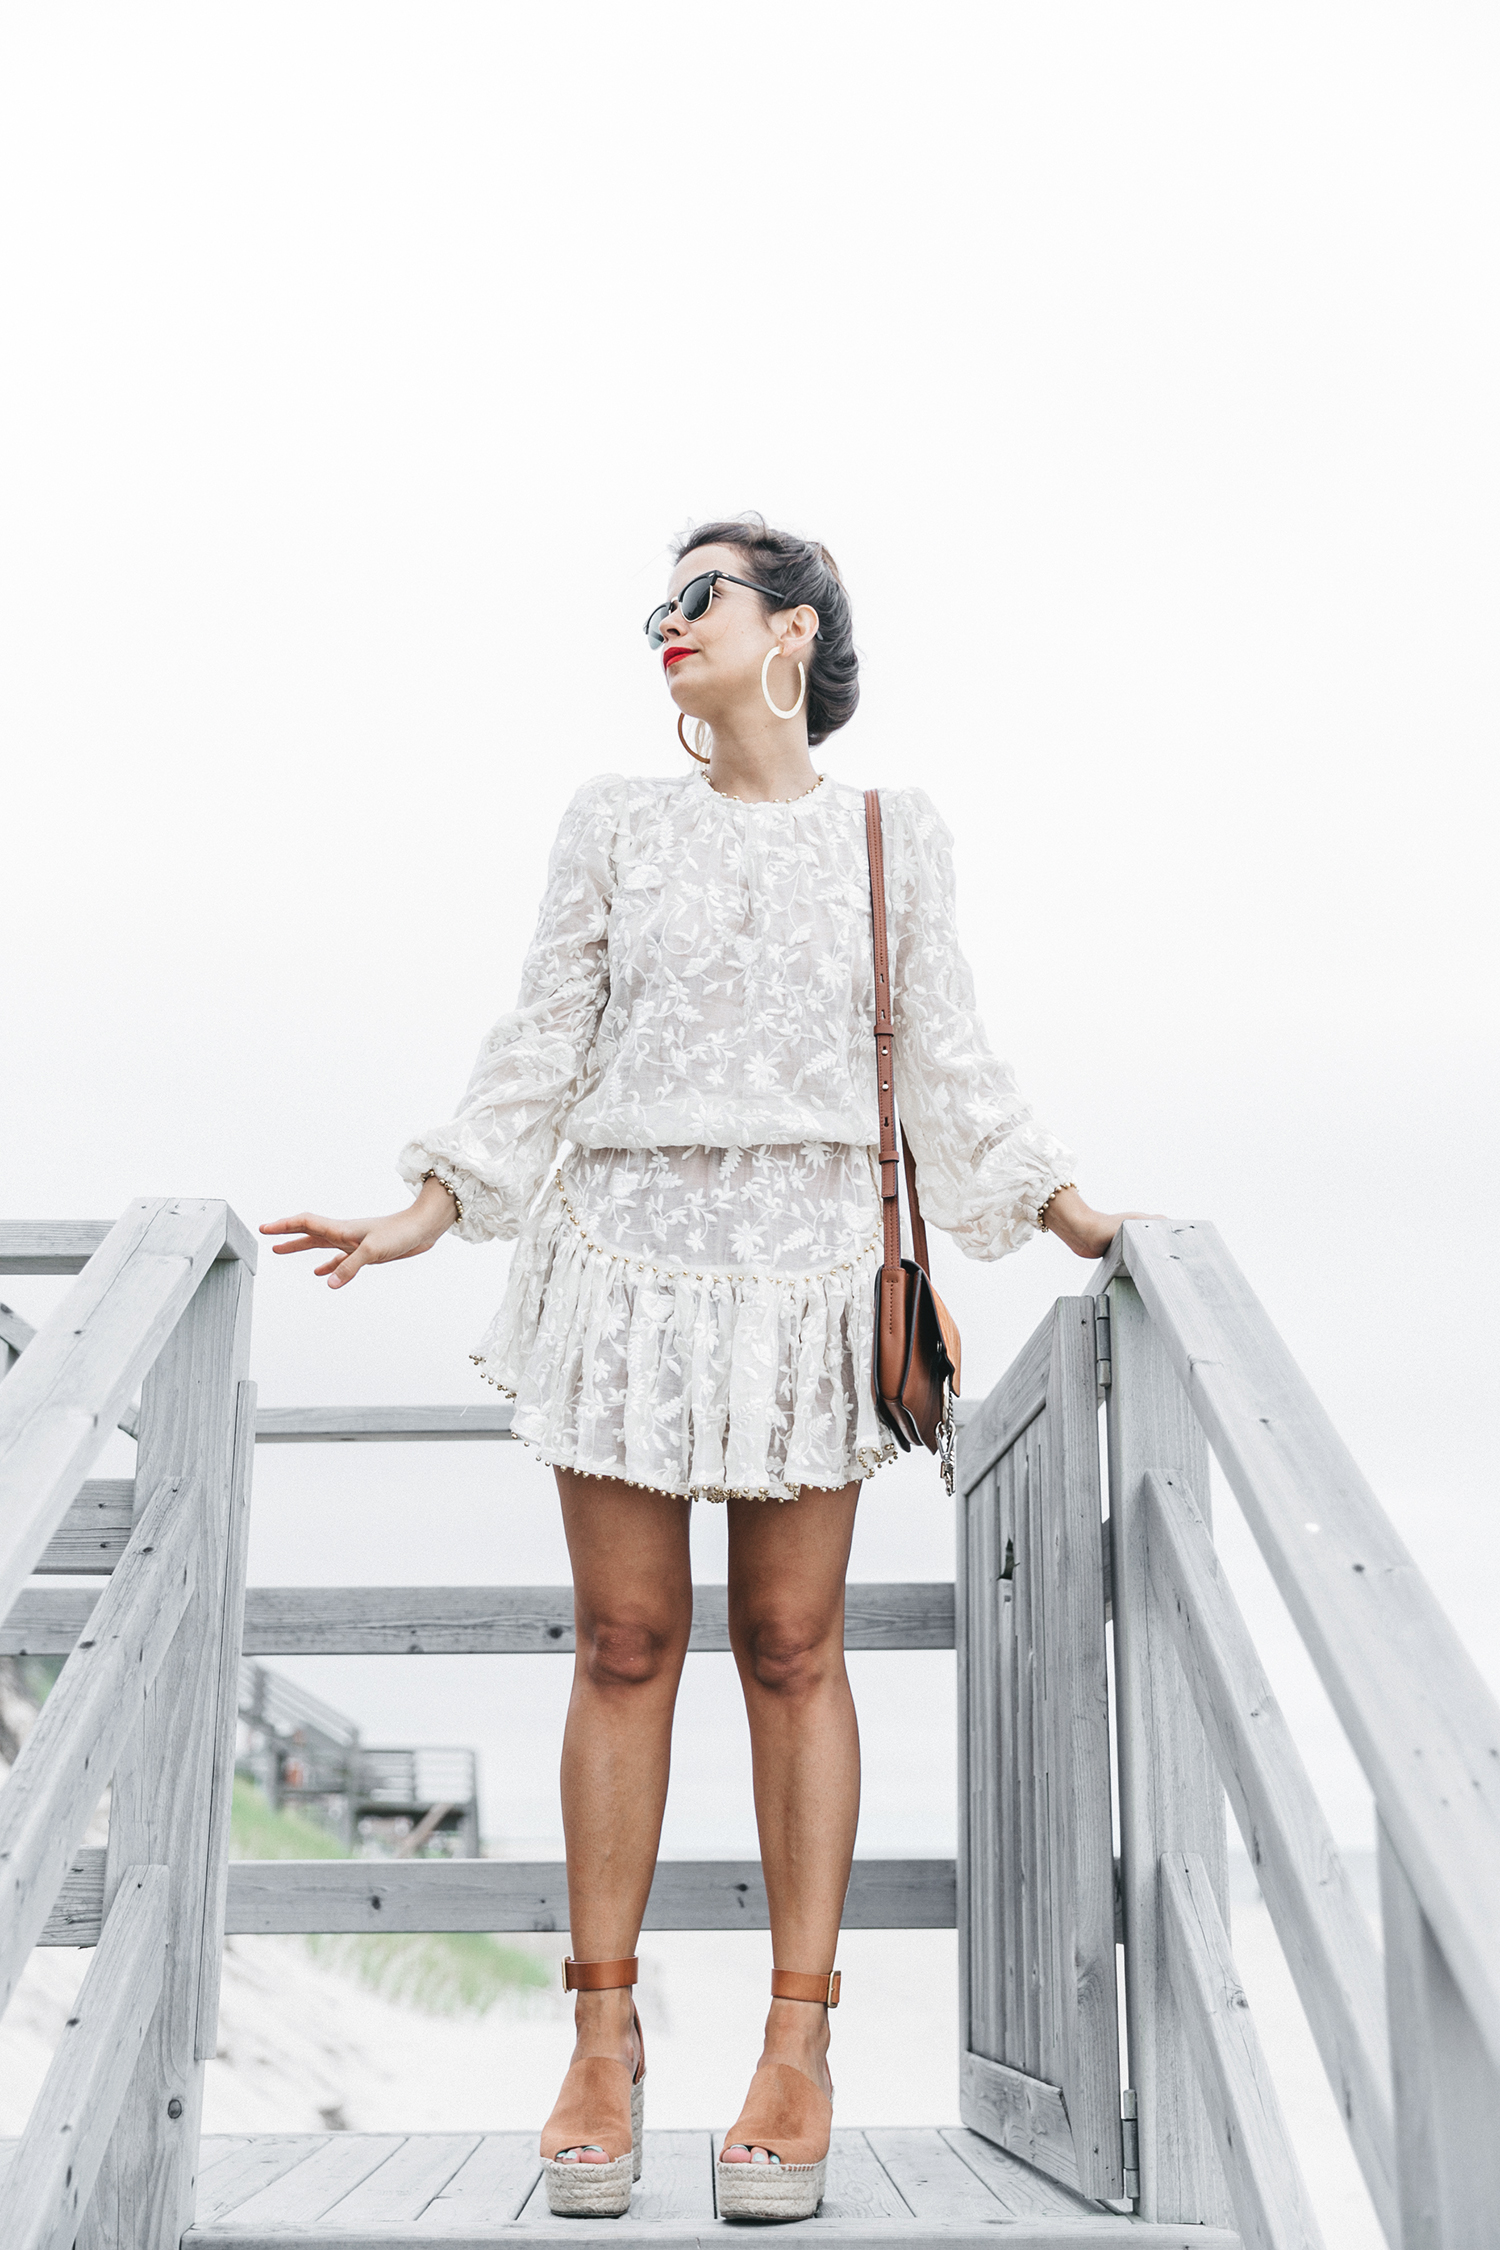 Revolve_in_The_Hamptons-Zimmermann-Embroidered_Dress-WHite_Dress-Chloe_Fay_Bag-Chloe_Wedges-Outfit-104